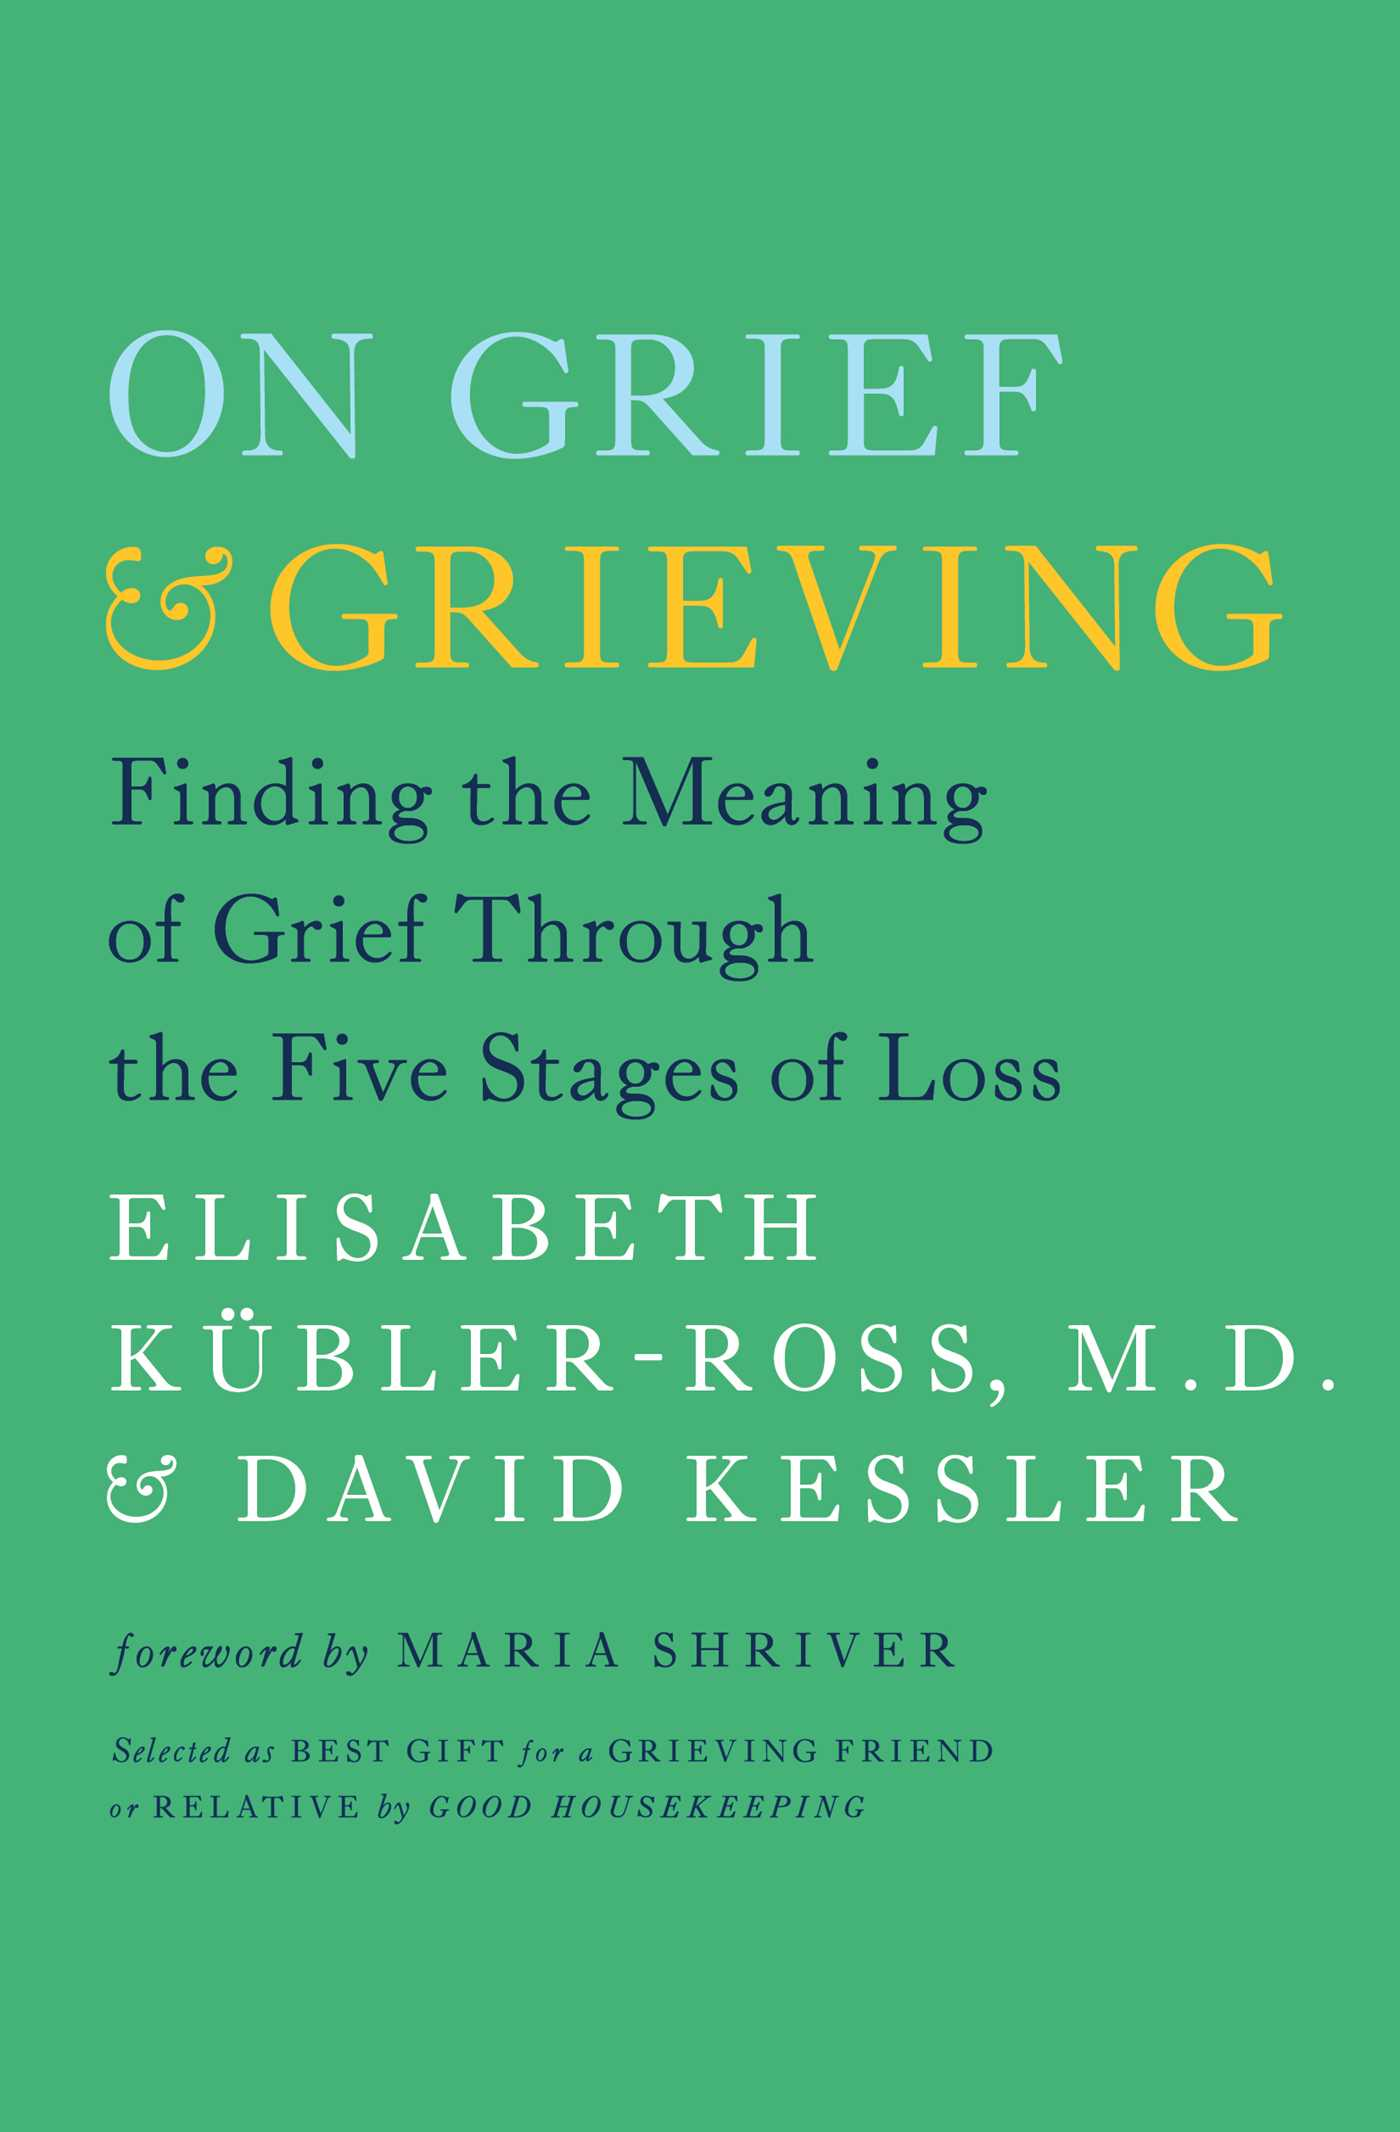 On grief and grieving 9780743274500 hr